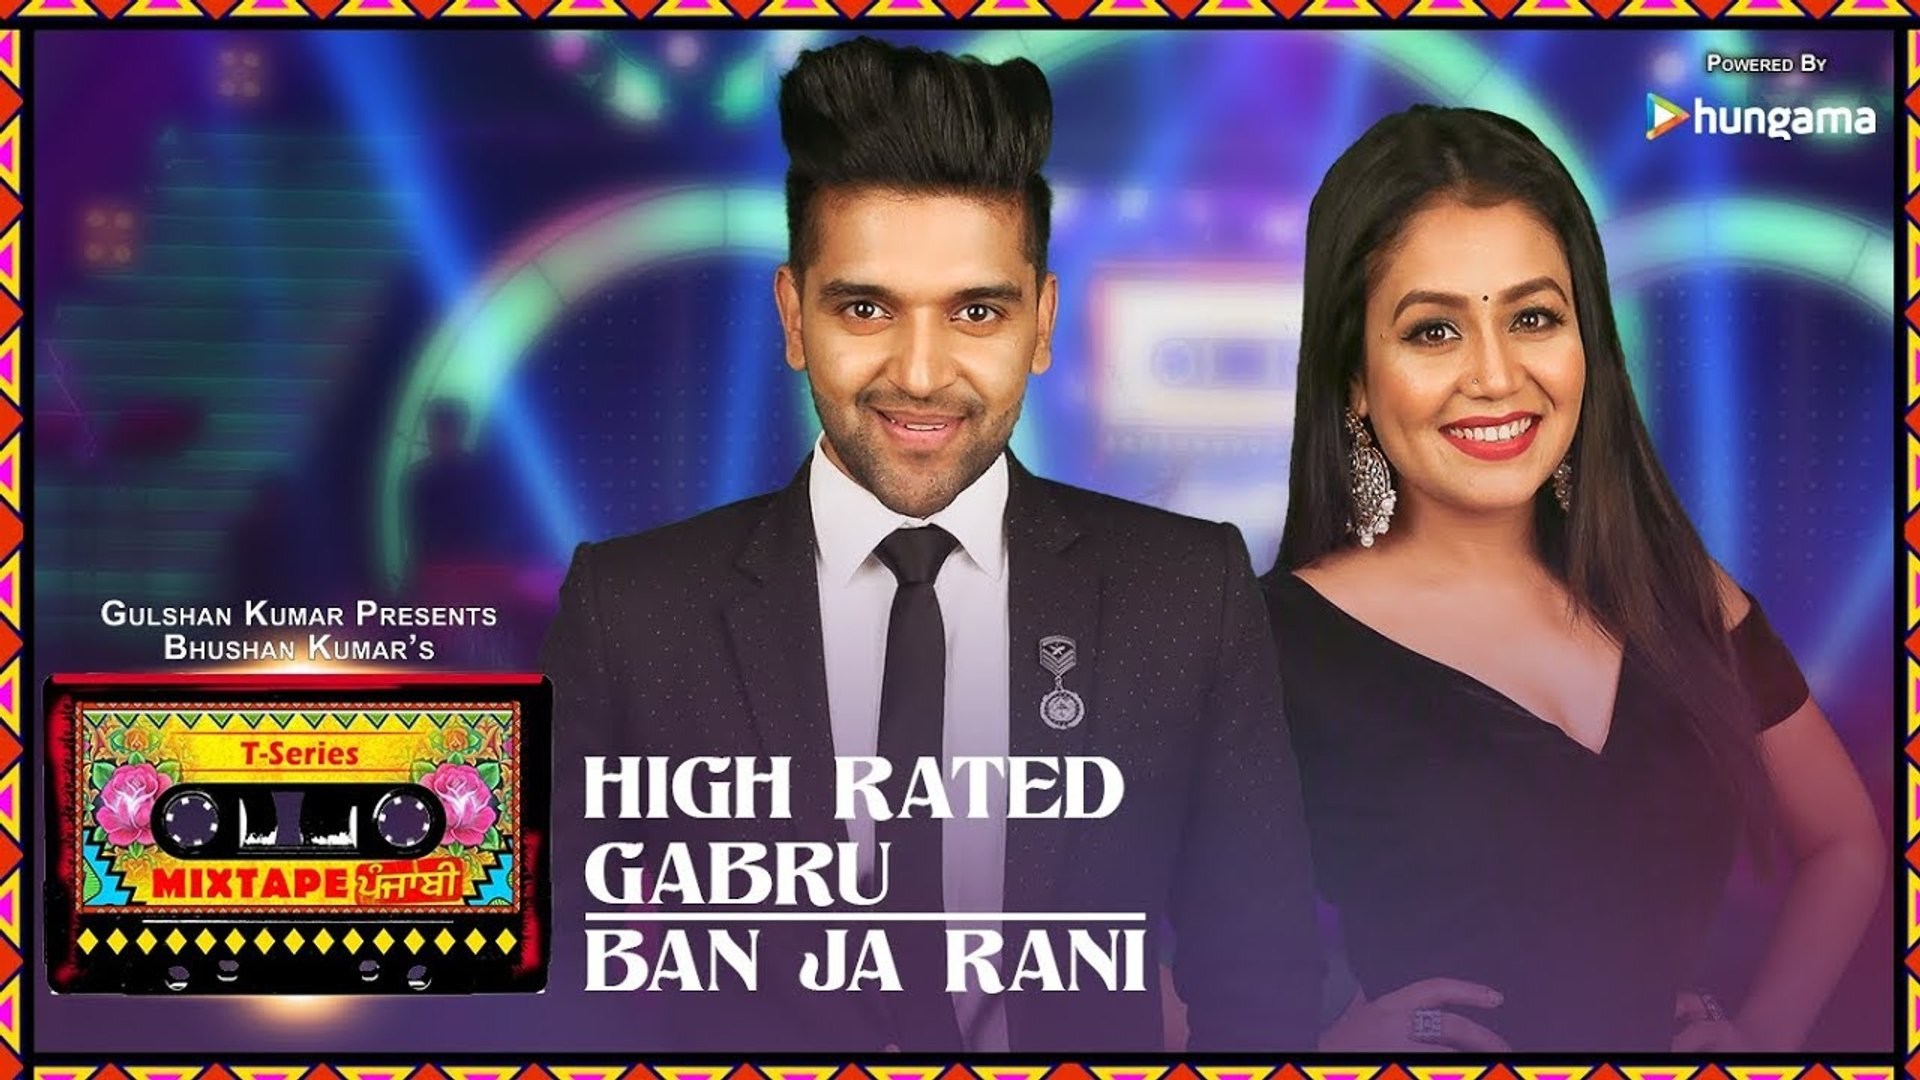 New Punjabi Songs - High Rated Gabru/Ban Ja Rani - Latest Punjabi Songs - Guru Randhawa, Neha Kakkar